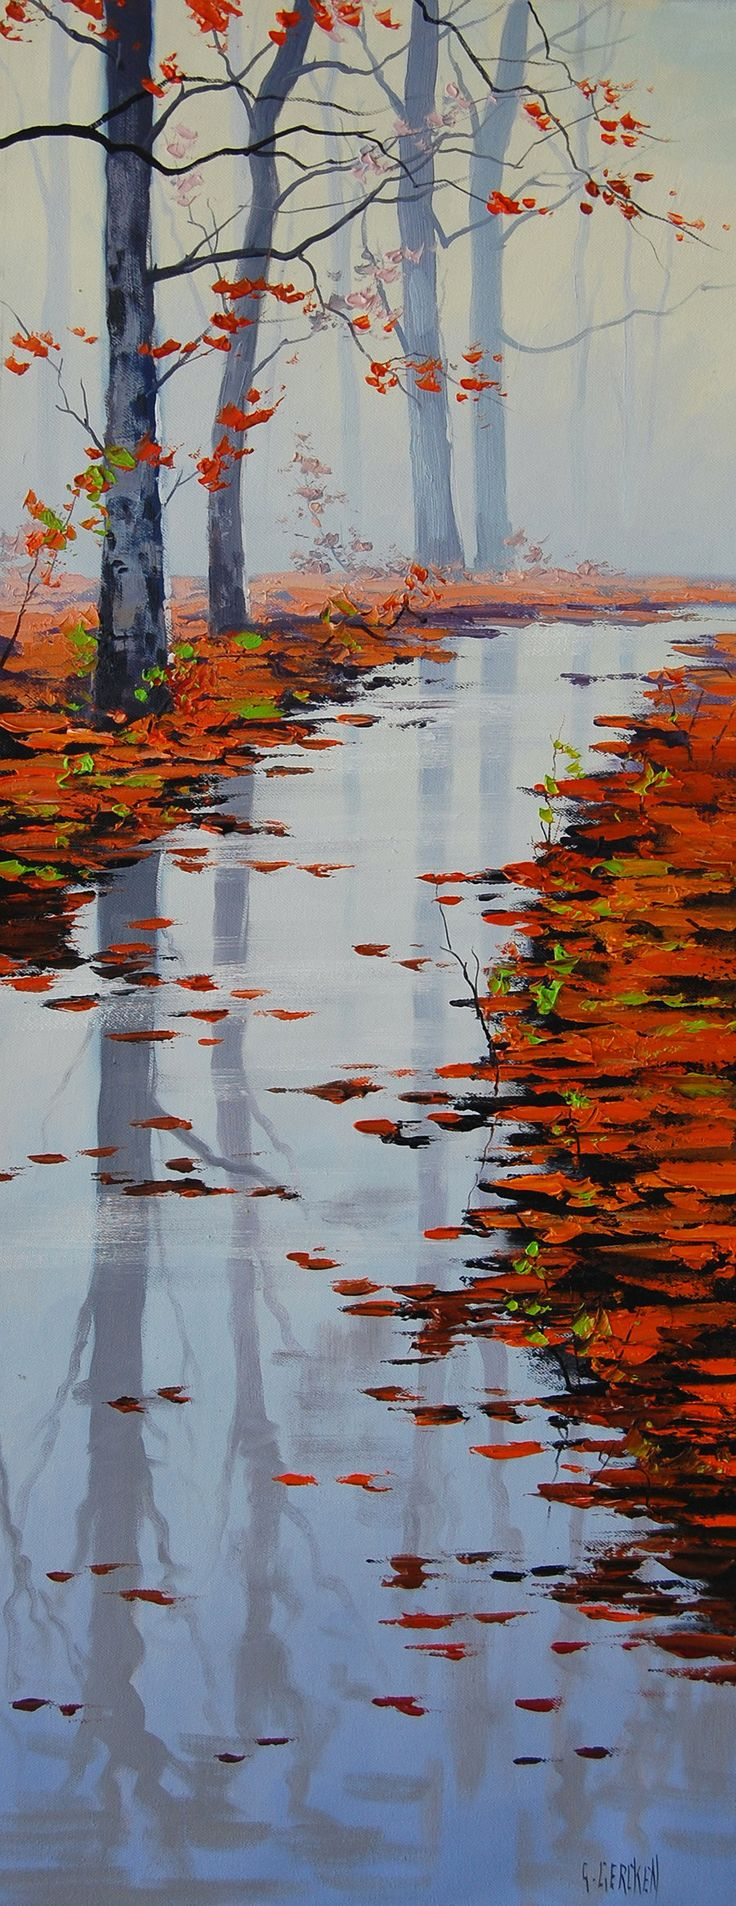 Last Autumn days by *artsaus (Graham Gercken) on deviantART - All my paintings are in Oil on Linen canvas using both brush and palette knife